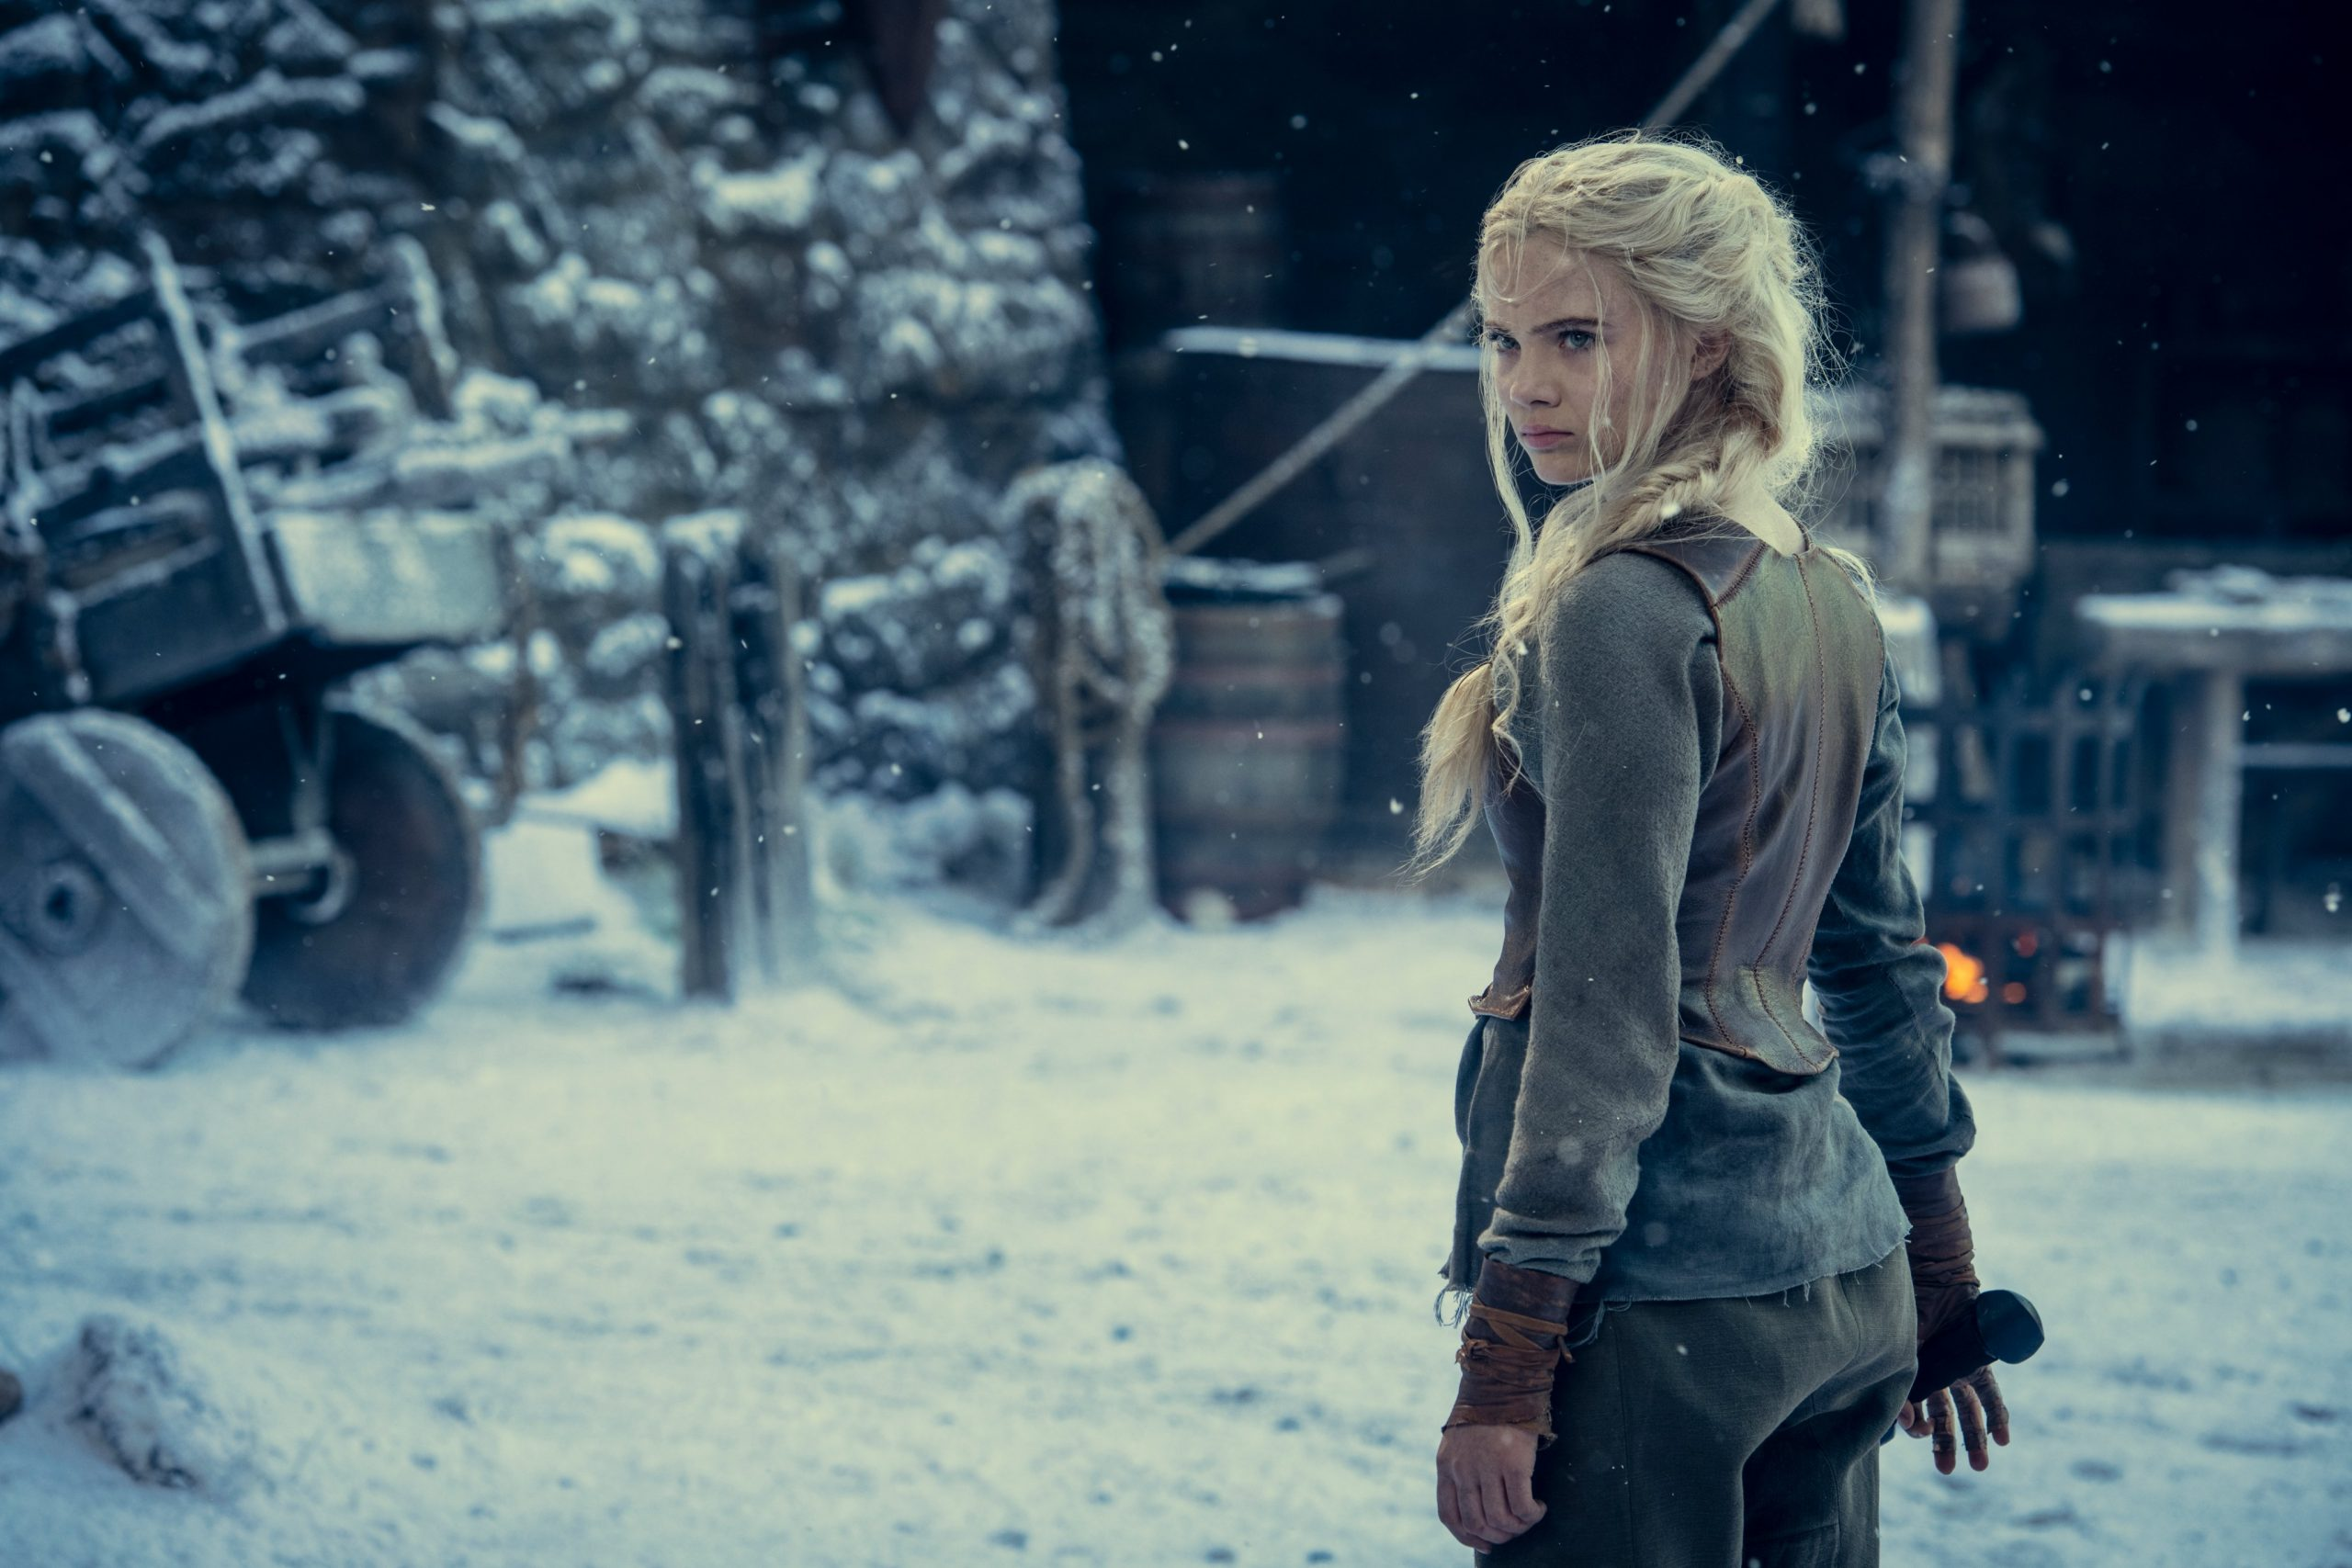 The Witcher Season 2: New Trailer, Spoilers & Other UPDATES